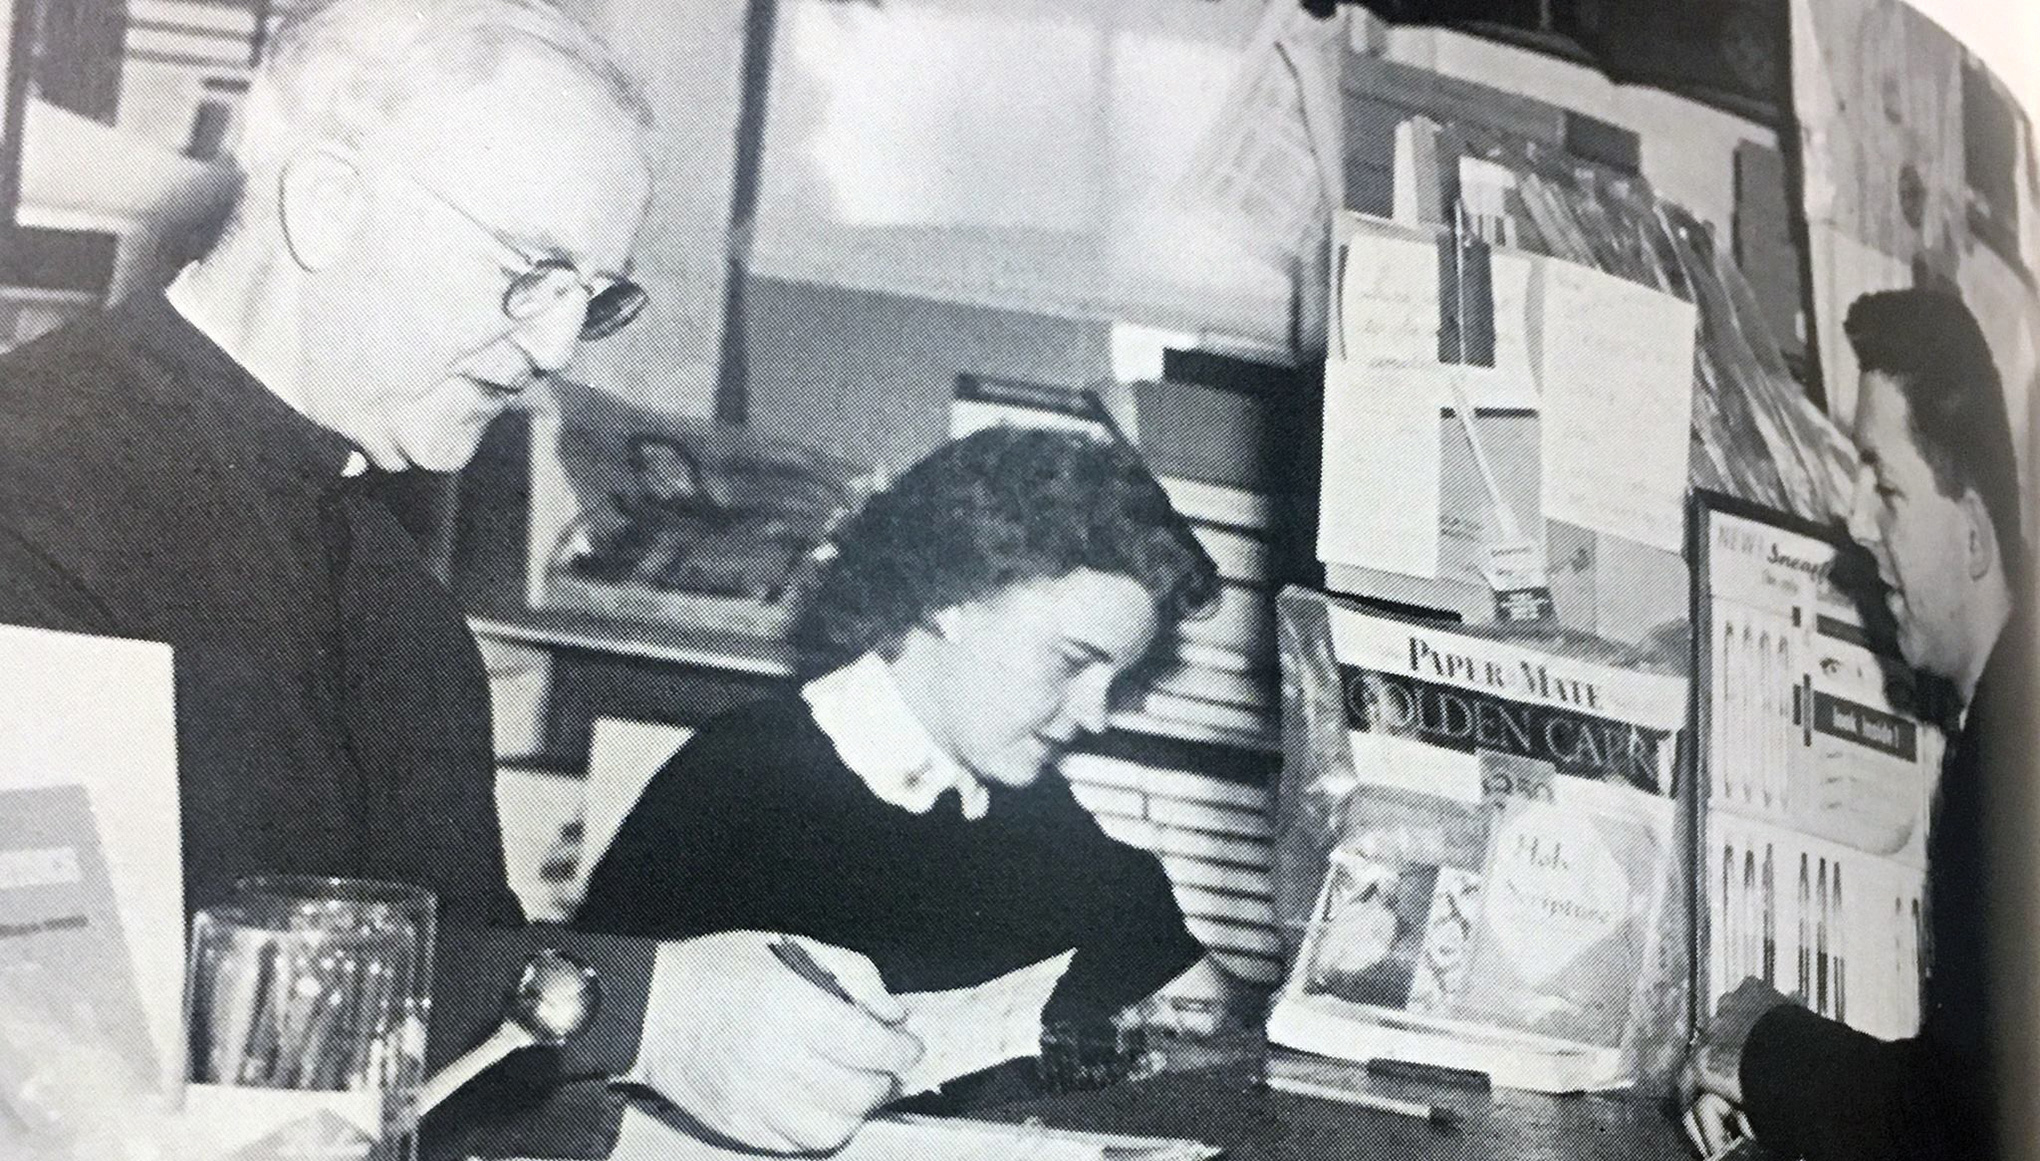 An old black and white of Brother Mulvaney and a nun working in the book store.